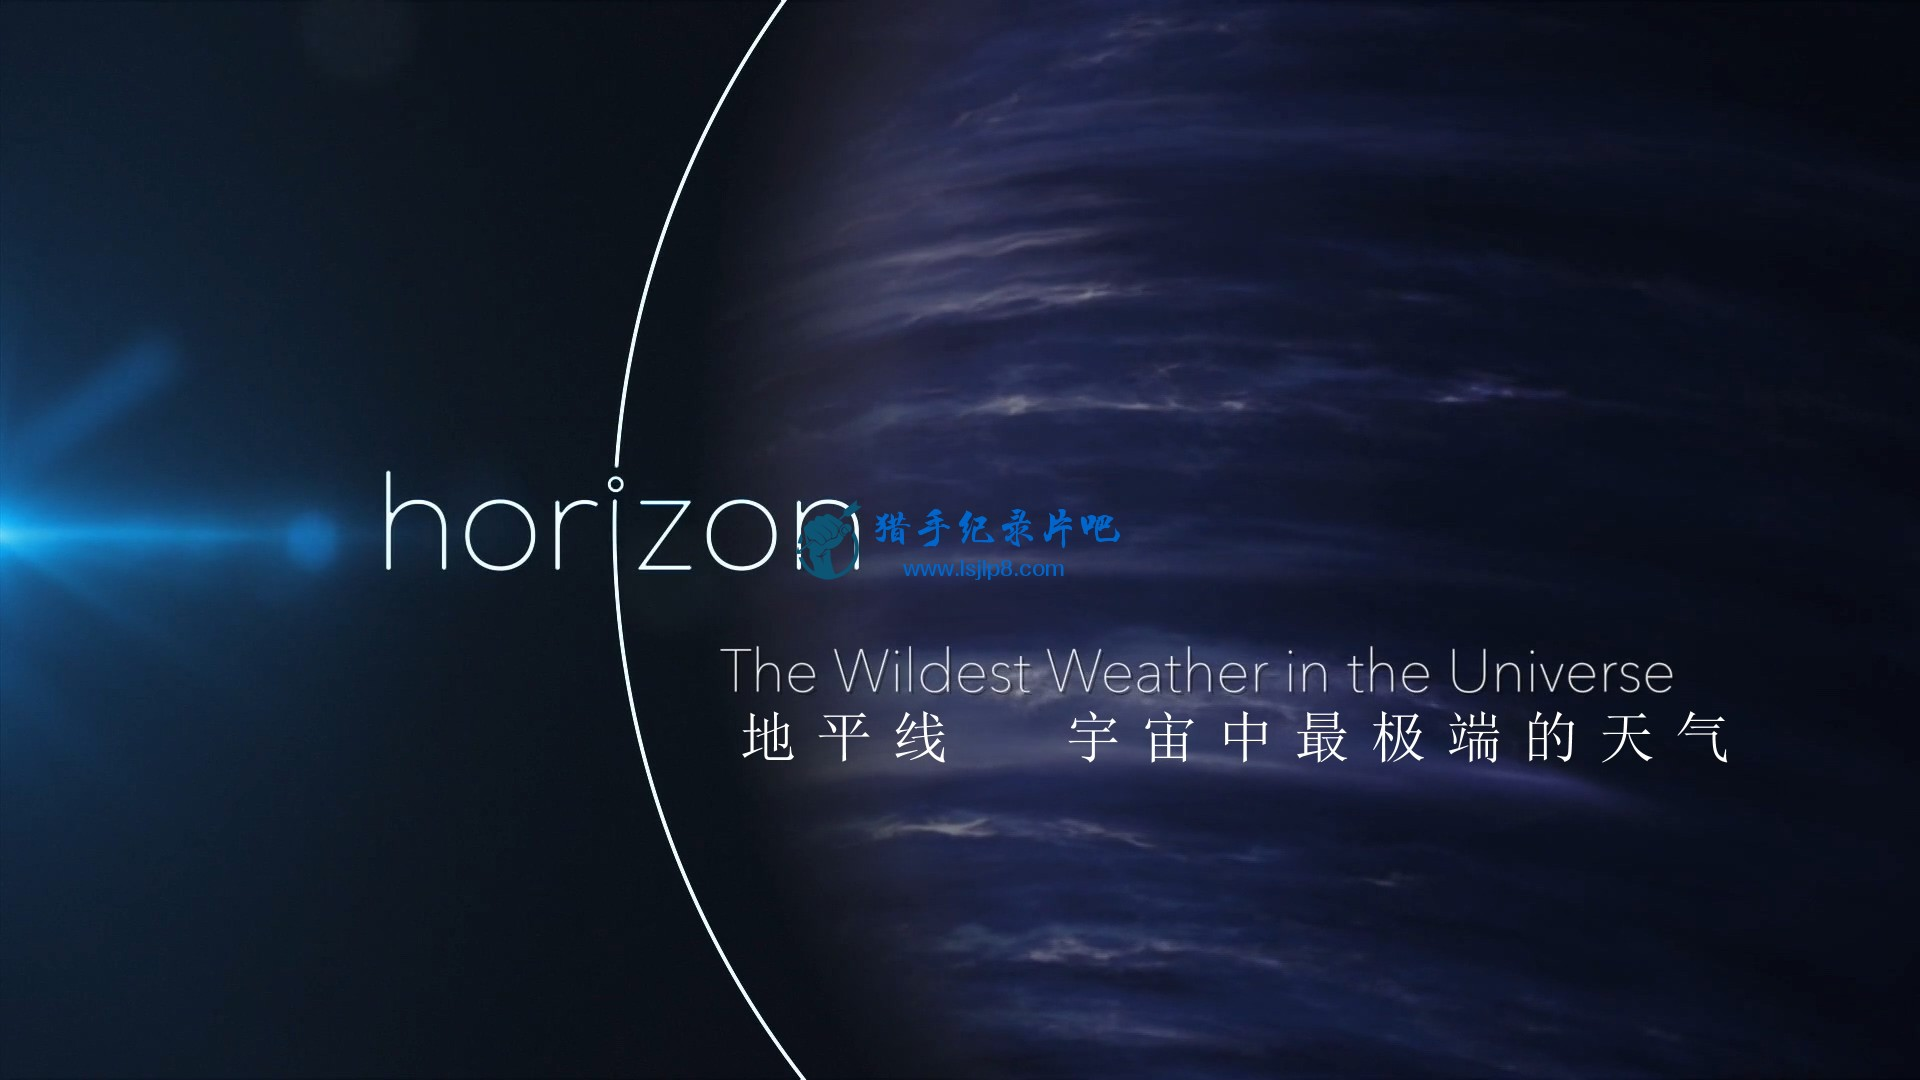 BBC.Horizon.2016.The.Wildest.Weather.in.the.Universe.1080p.HDTV.x264.AAC.MVGroup.jpg